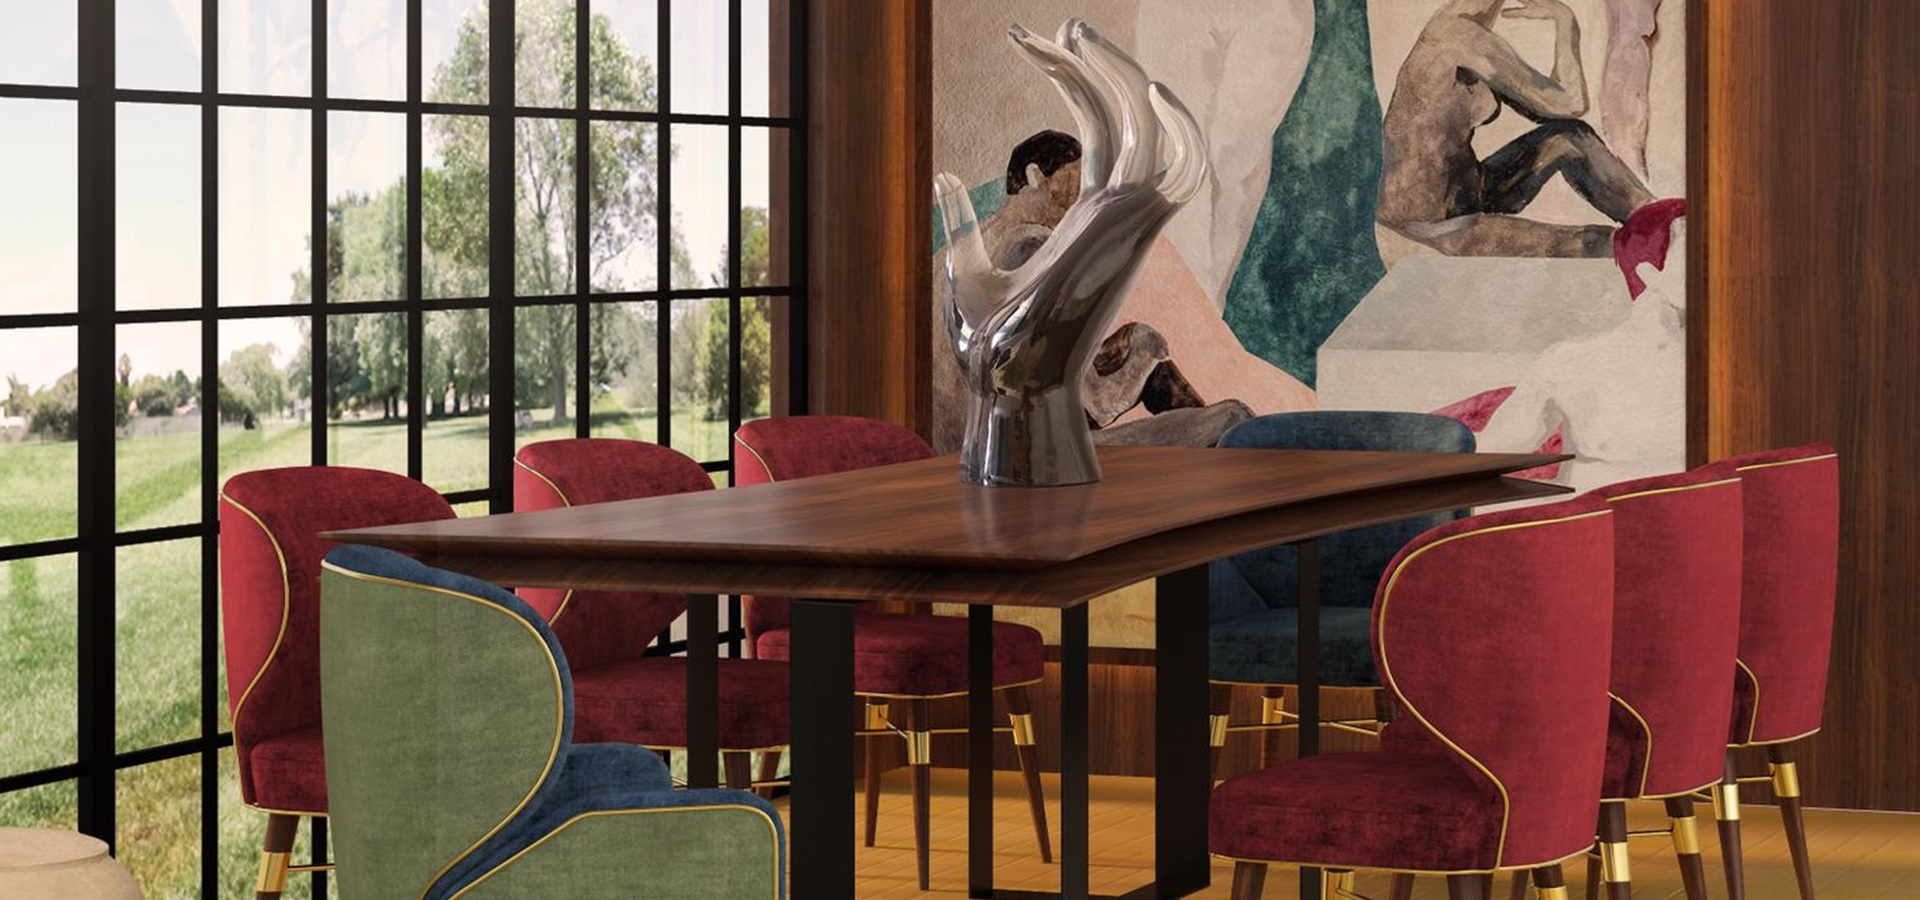 Louis Dining Chair and Louis Dining Chair I with leveza dining table designed by Malabar